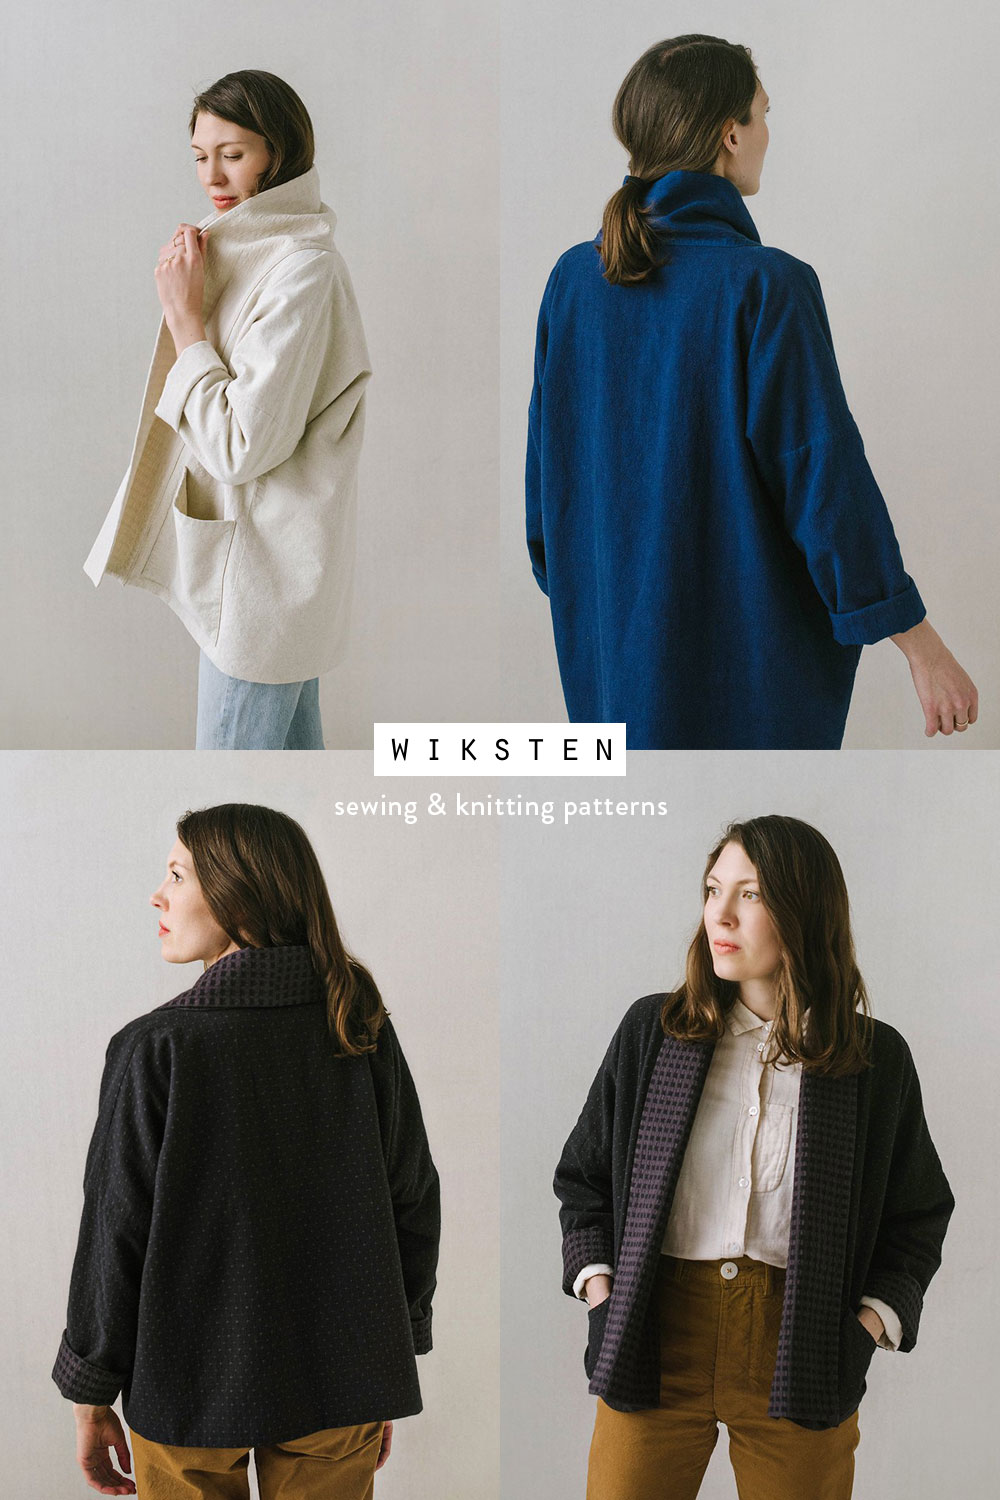 Meet the Maker blog series: Jenny Gordy of Wiksten creates simple, elegant, easy to follow garment patterns. Follow this blog series to learn about more pattern writers and artists in the sewing industry.